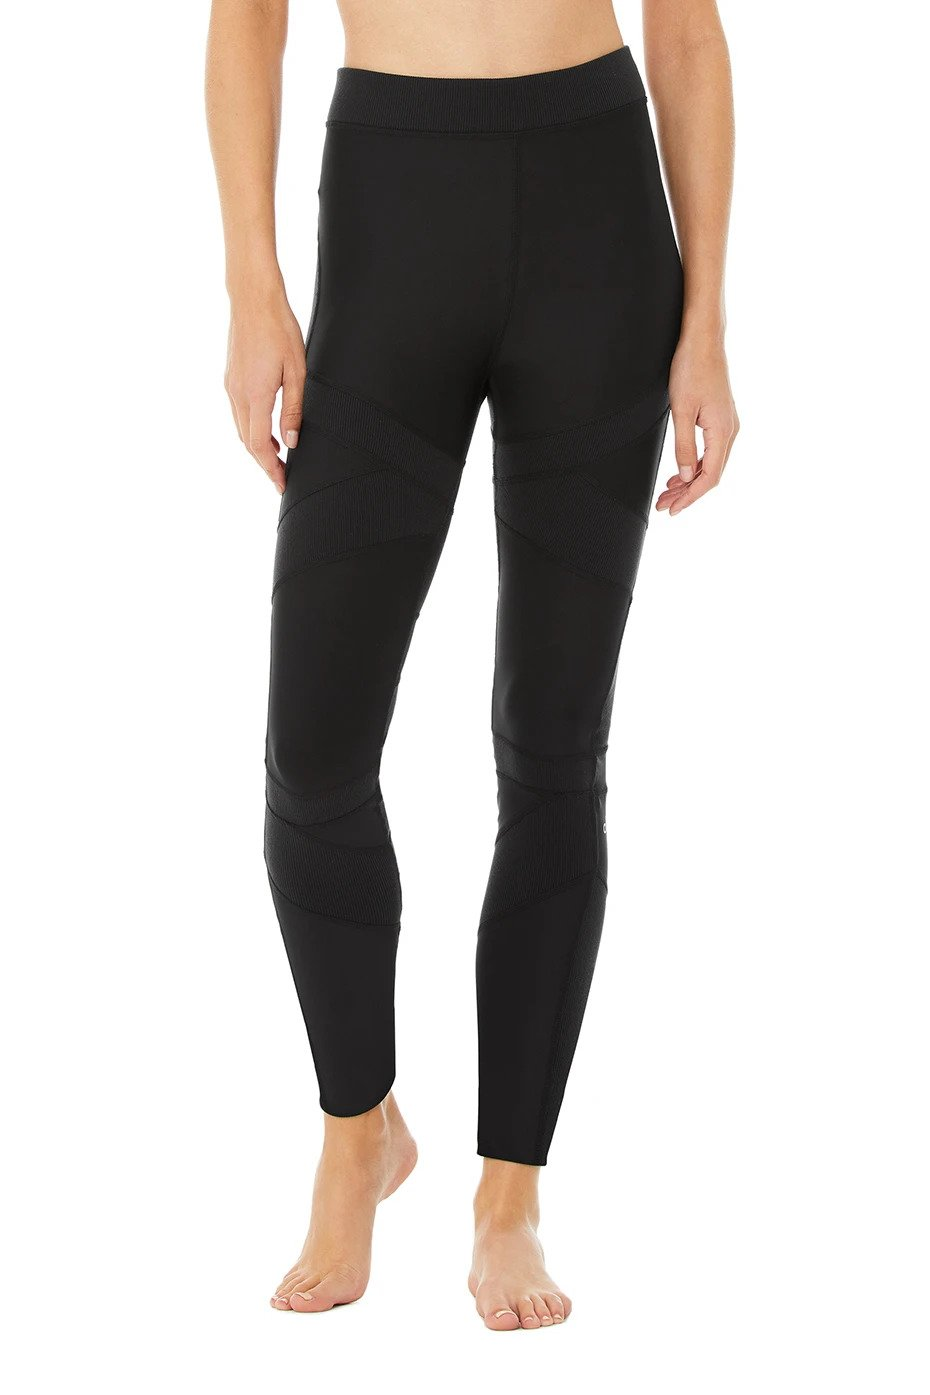 Alo Yoga XS High-Waist Level-Up Legging - Black